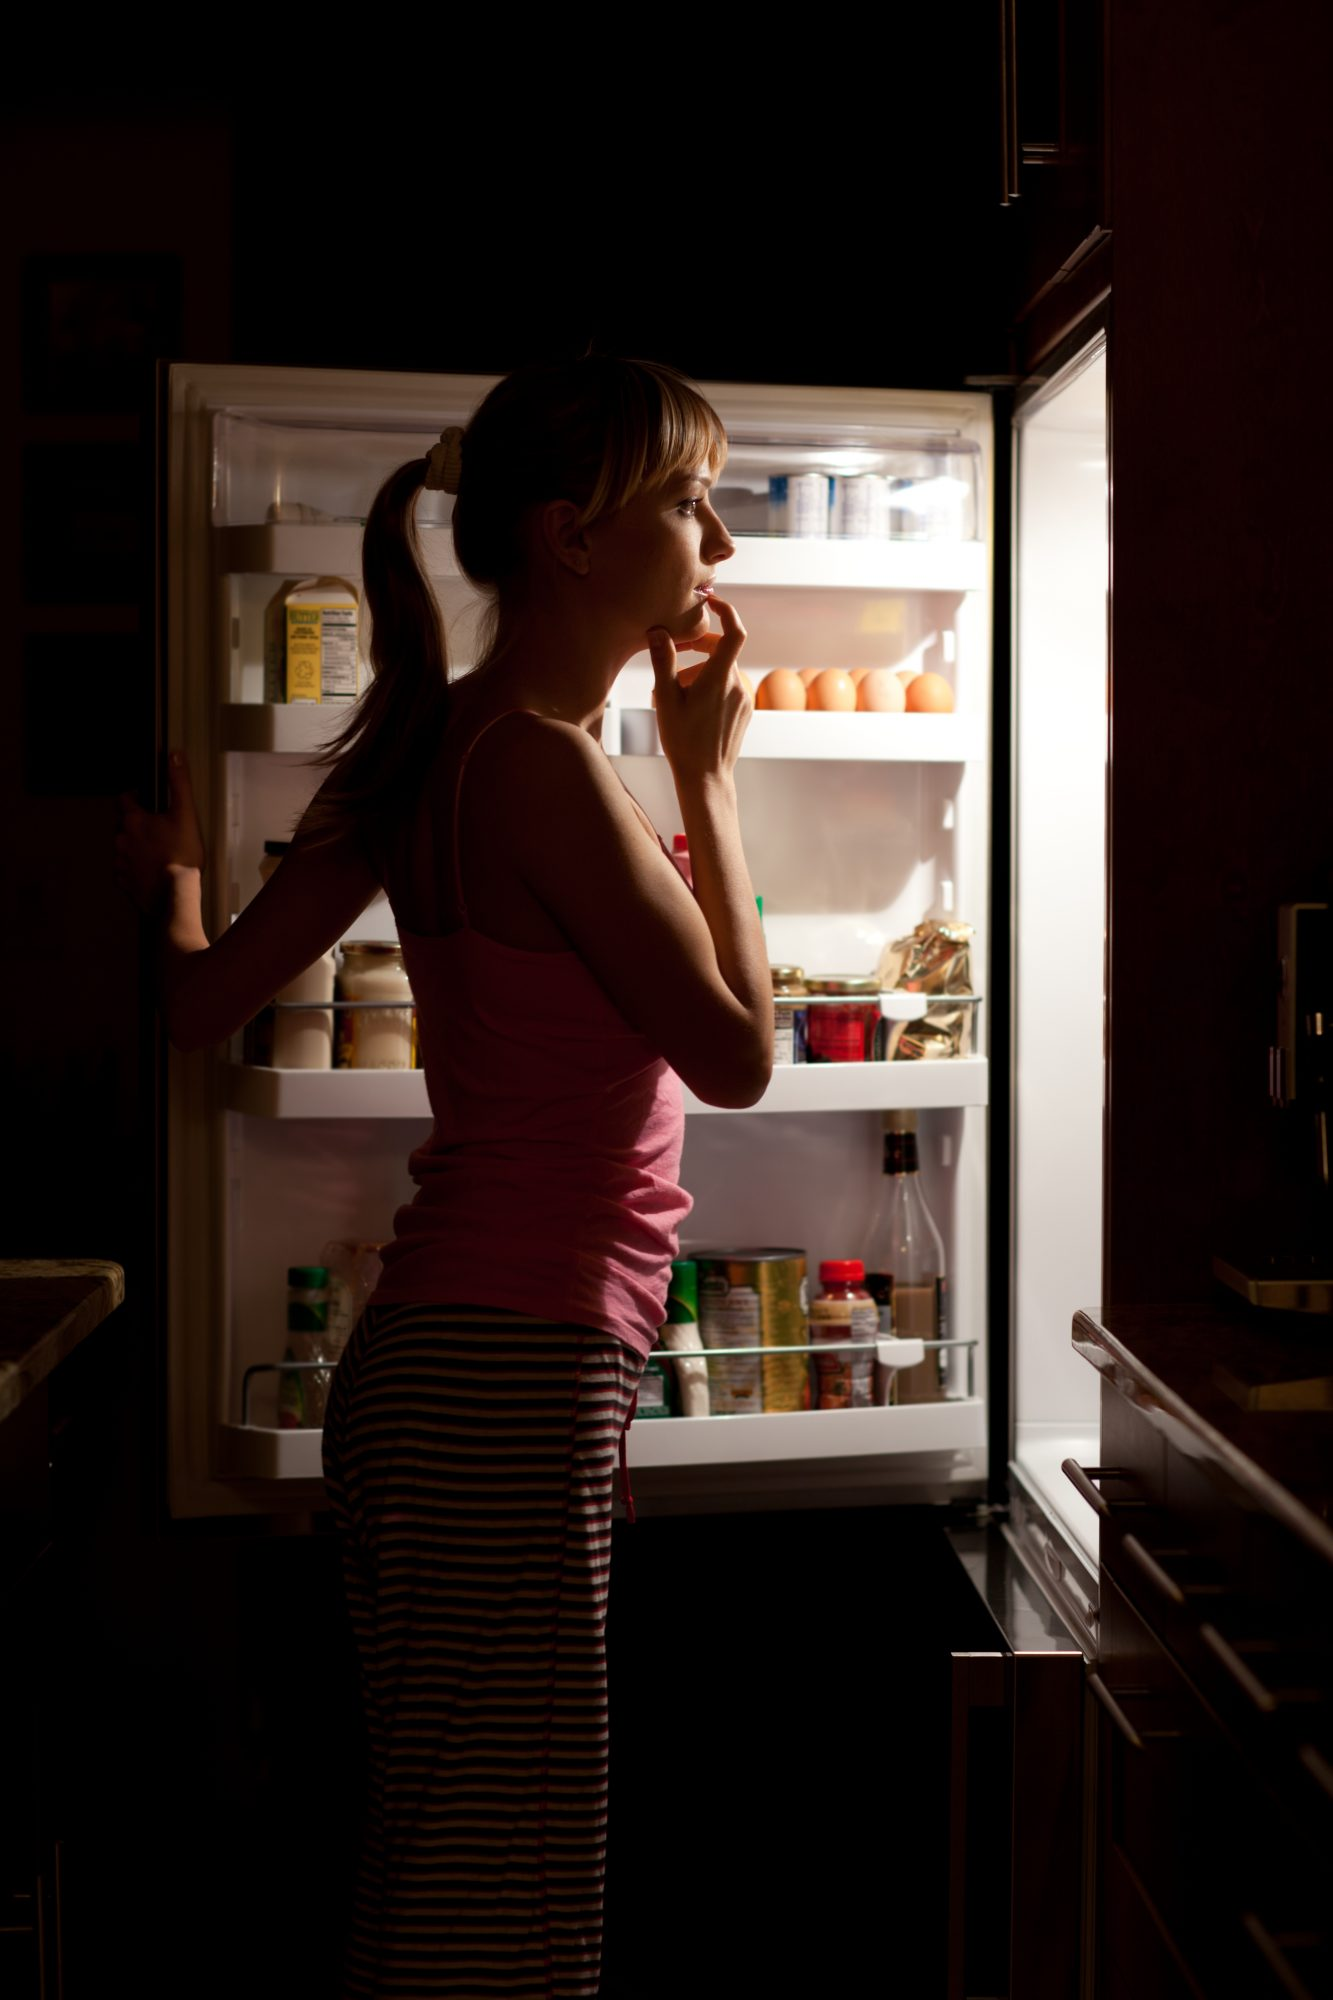 Midnight munching can disrupt your body clock